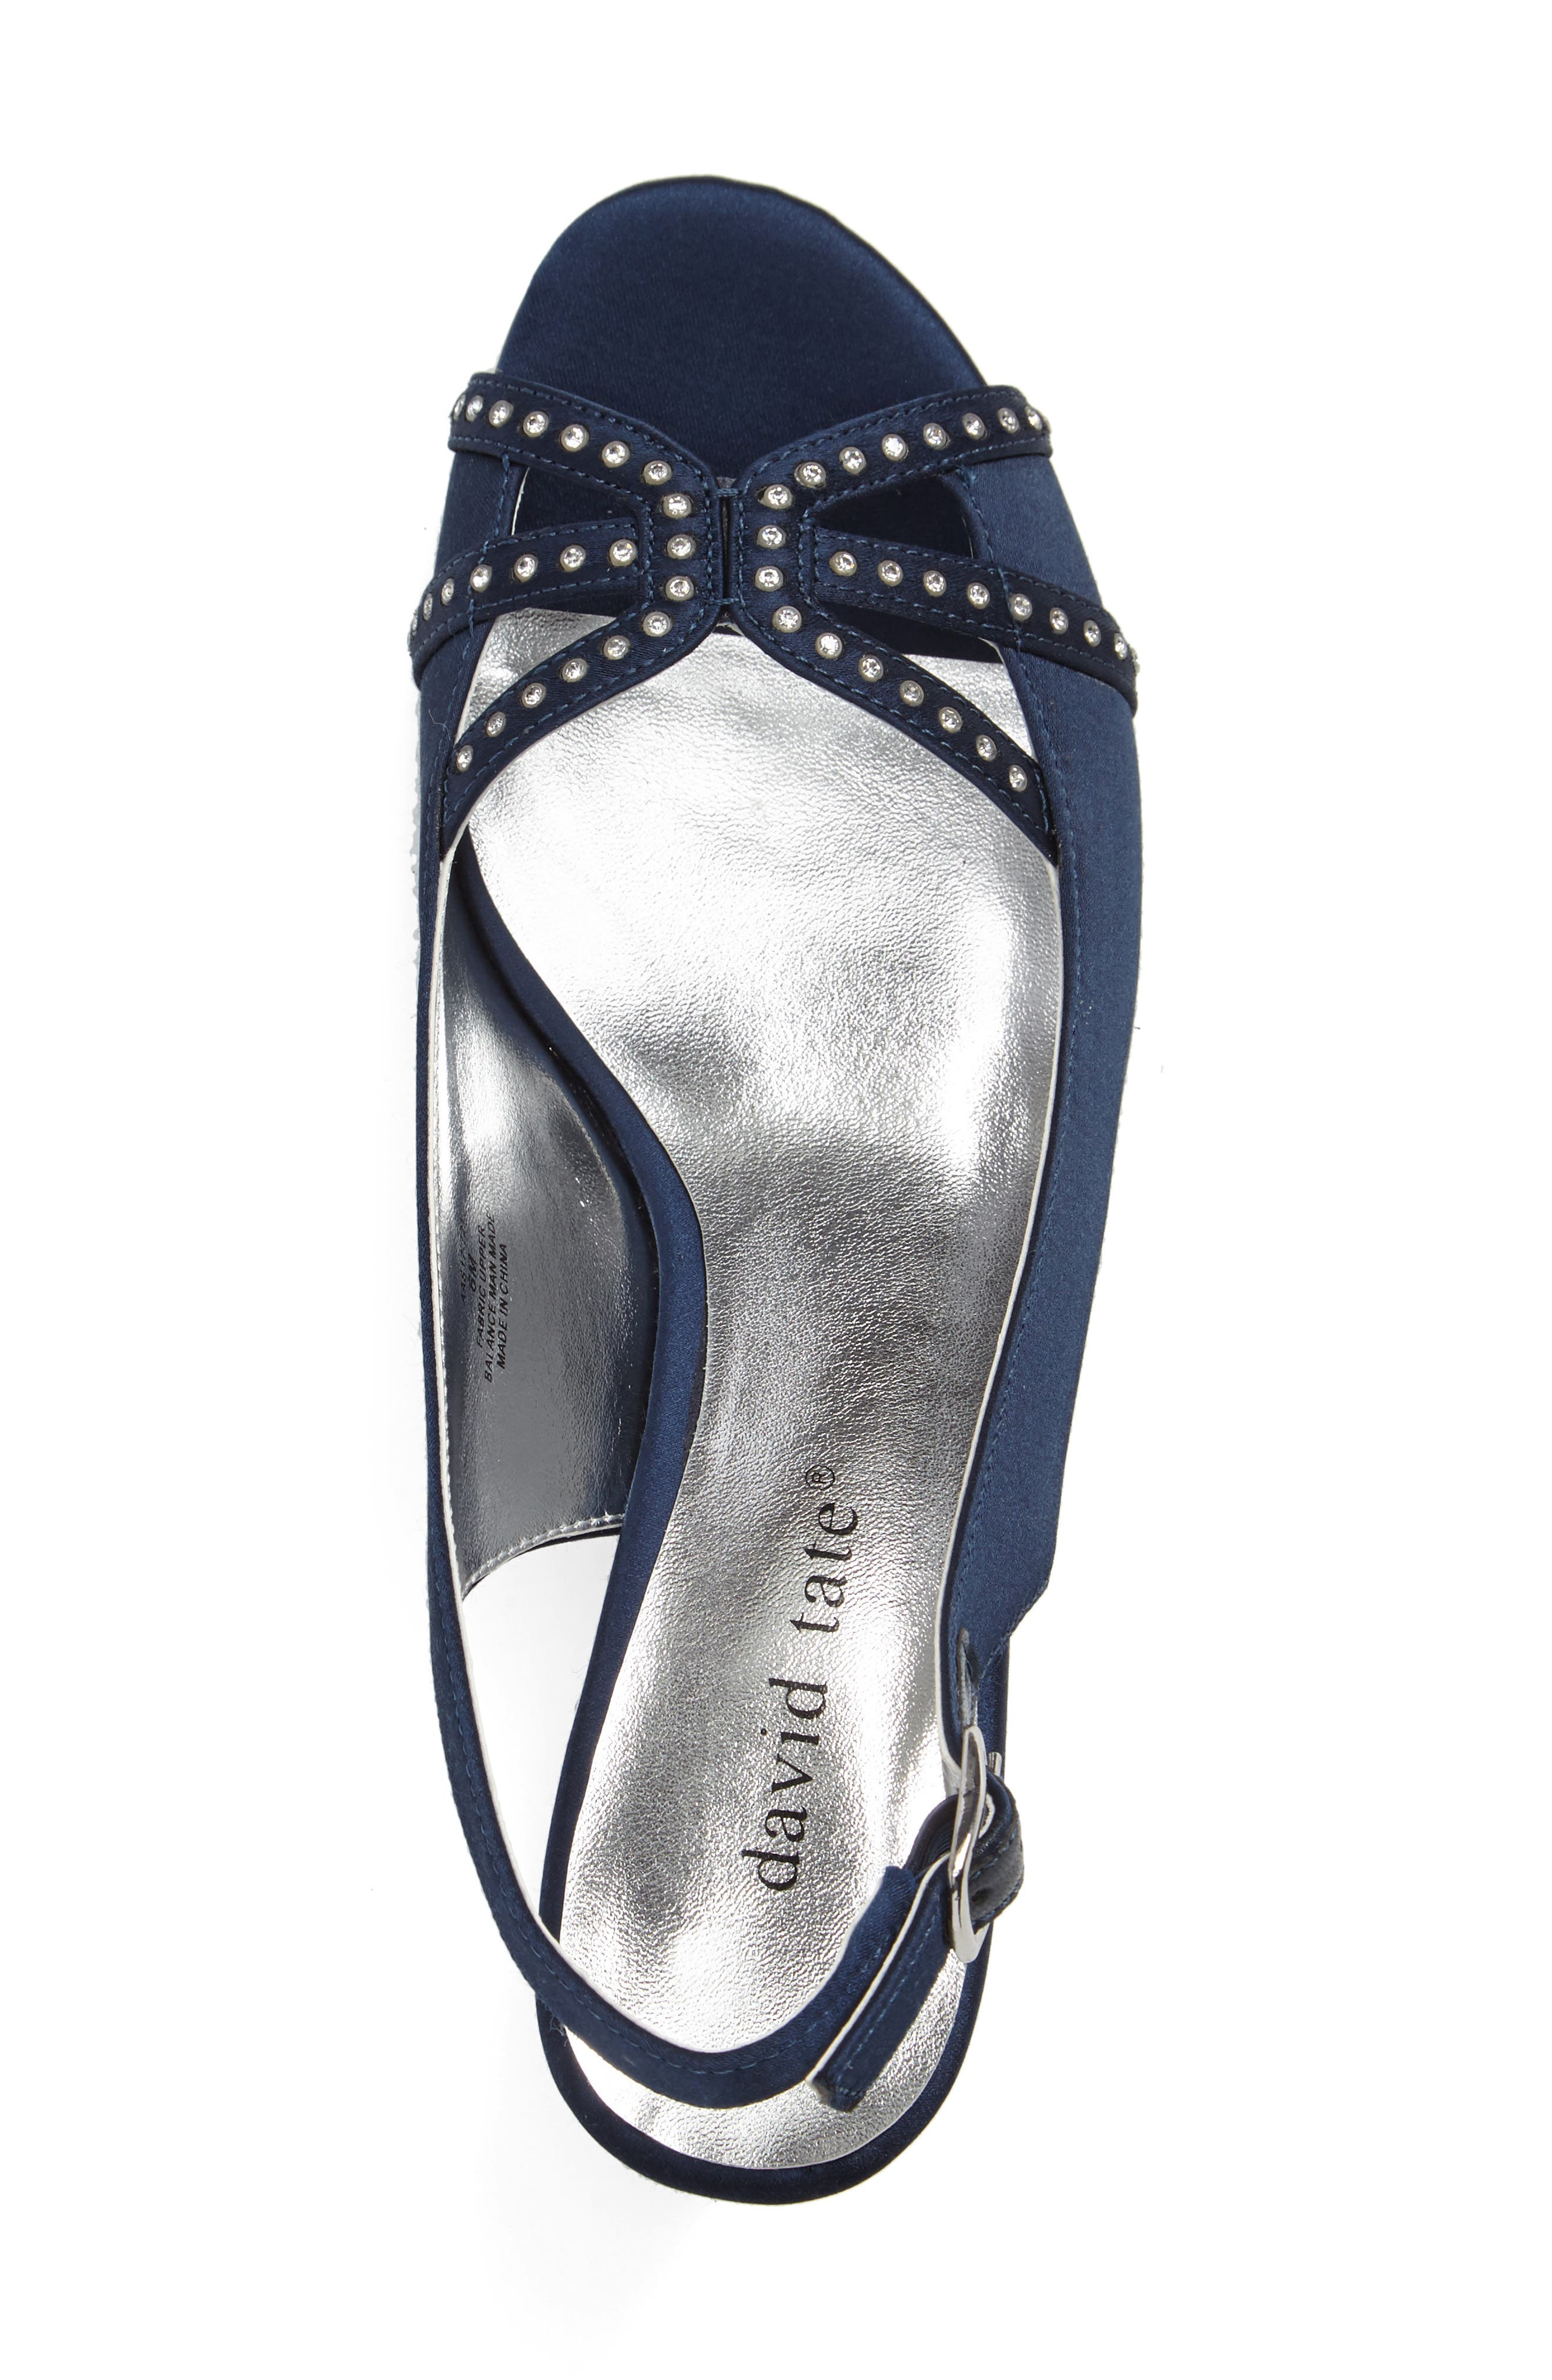 Regal Embellished Slingback Sandal,                             Alternate thumbnail 3, color,                             NAVY FABRIC